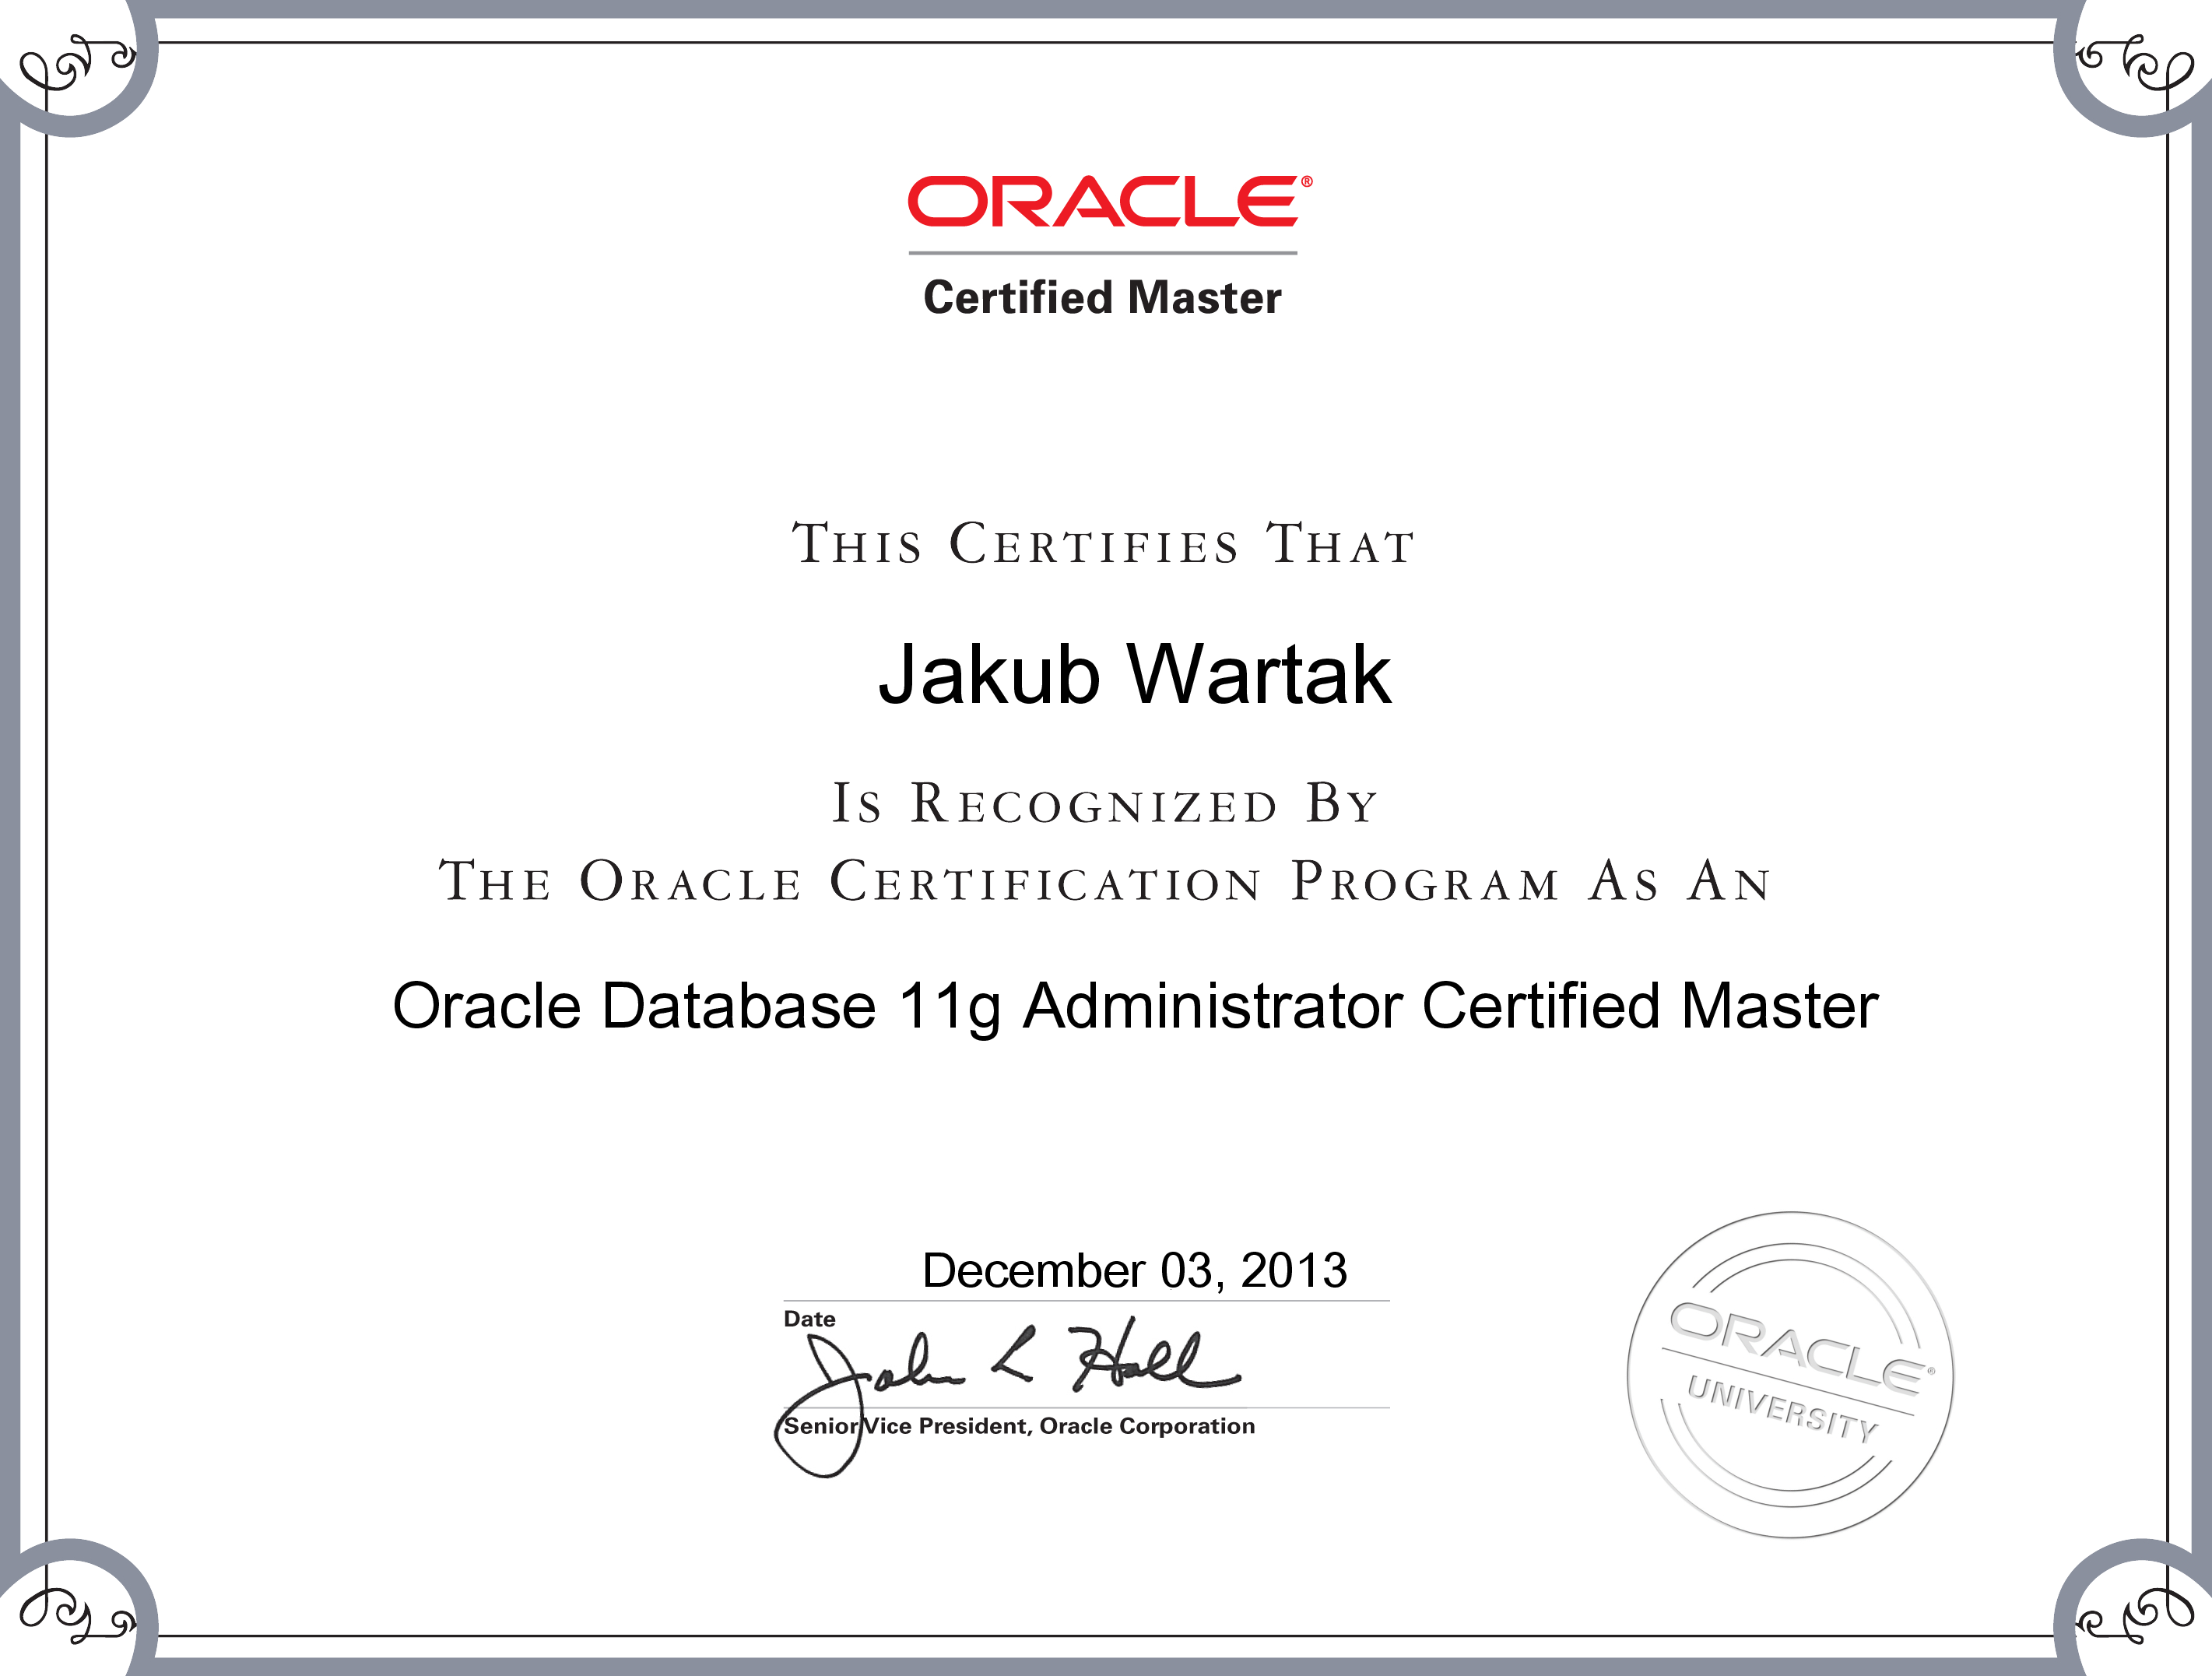 Oracle Certified Master 11g Jakub Wartaks Blog